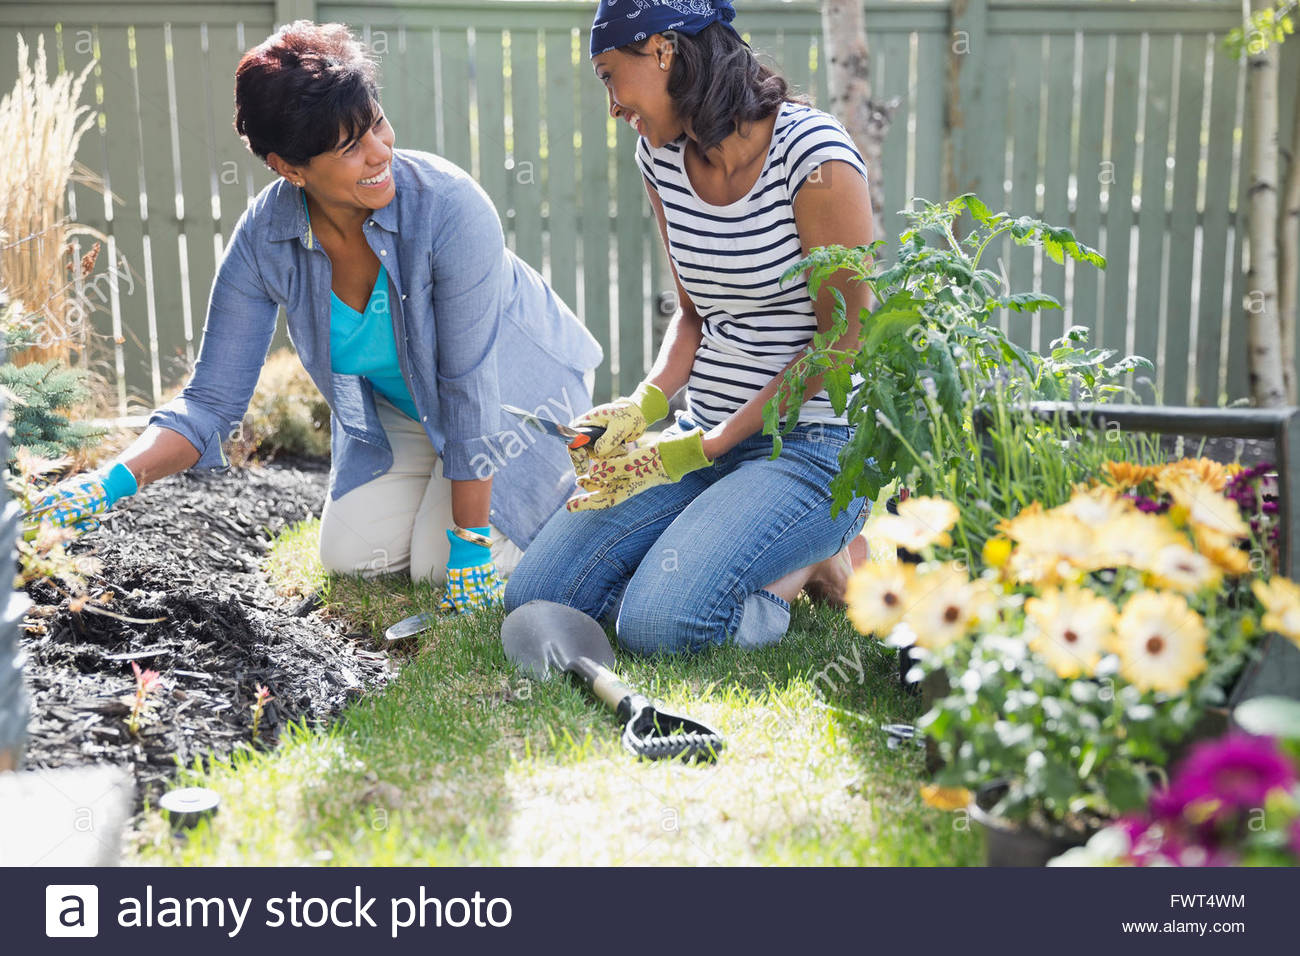 Mother and adult daughter gardening together - Stock Image